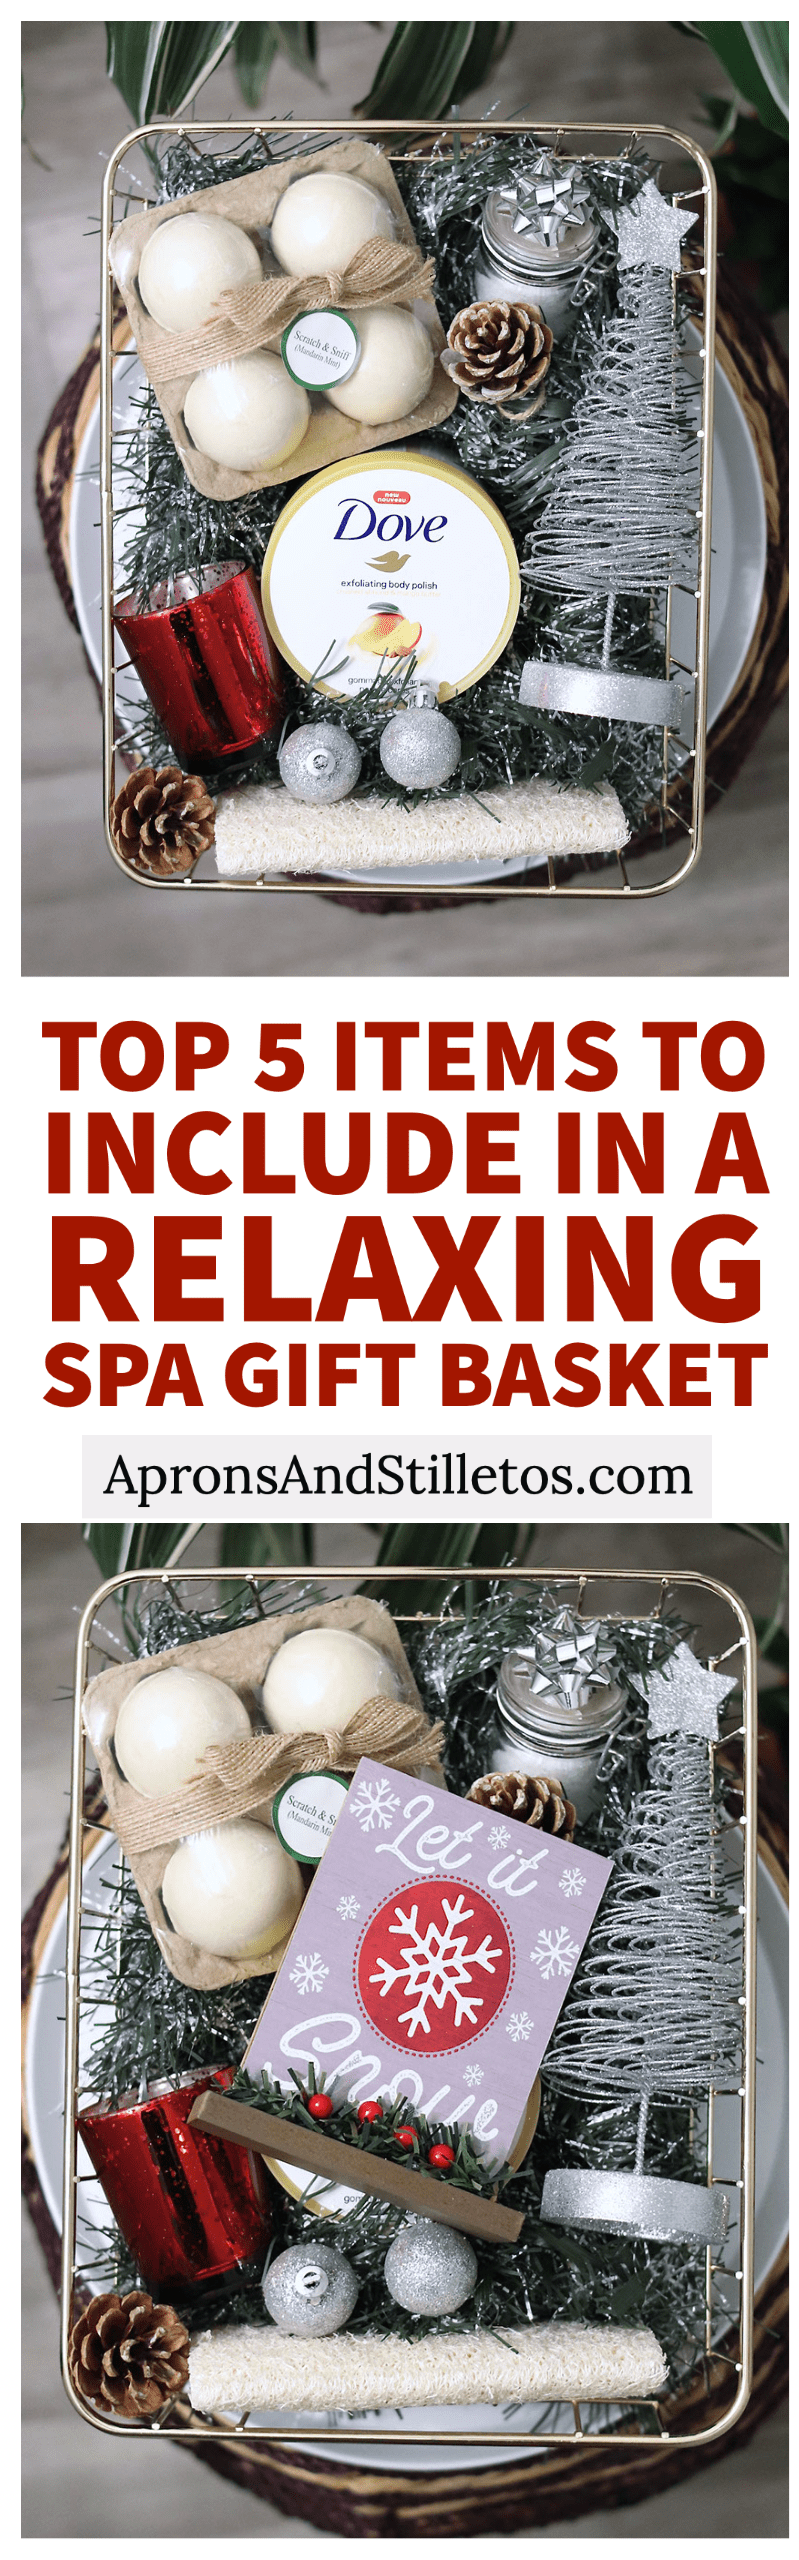 Top 5 Items To Include in a Relaxing Spa Gift Basket